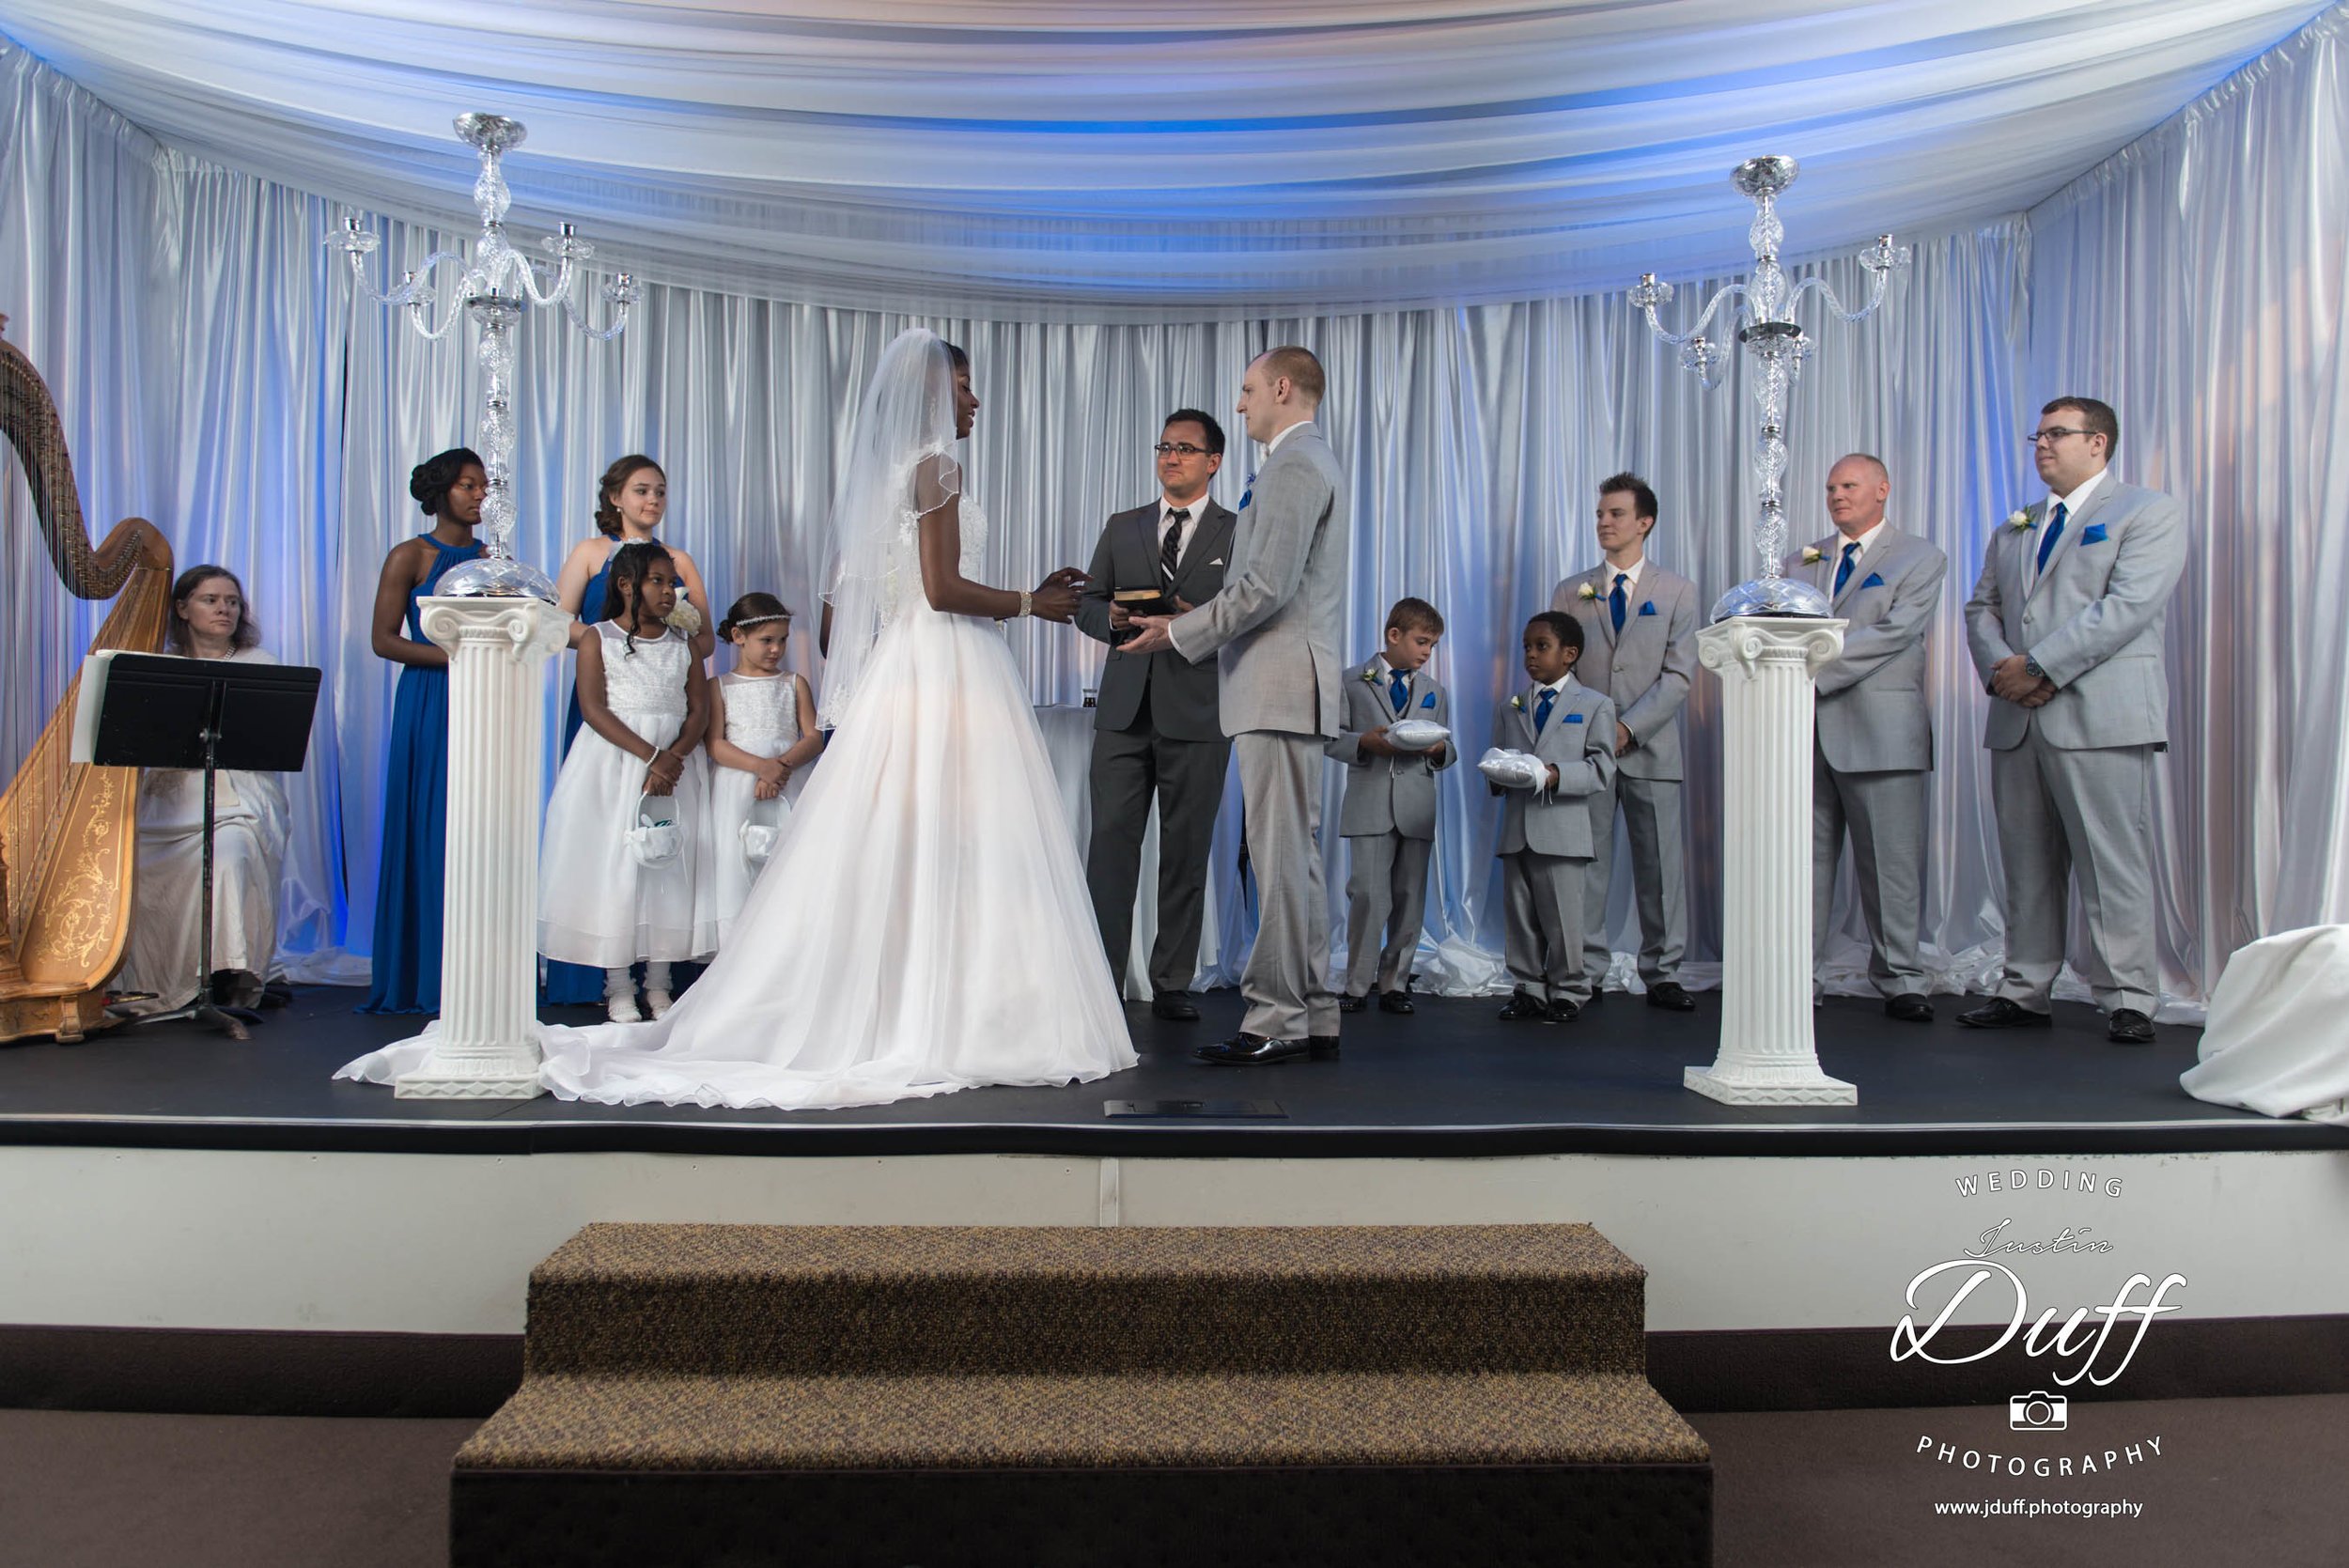 Fountains Golf Course Wedding - Royal Oak Photographer – Deanna & Shane Ceremony alter at Woodside church bride and groom exchanging vows